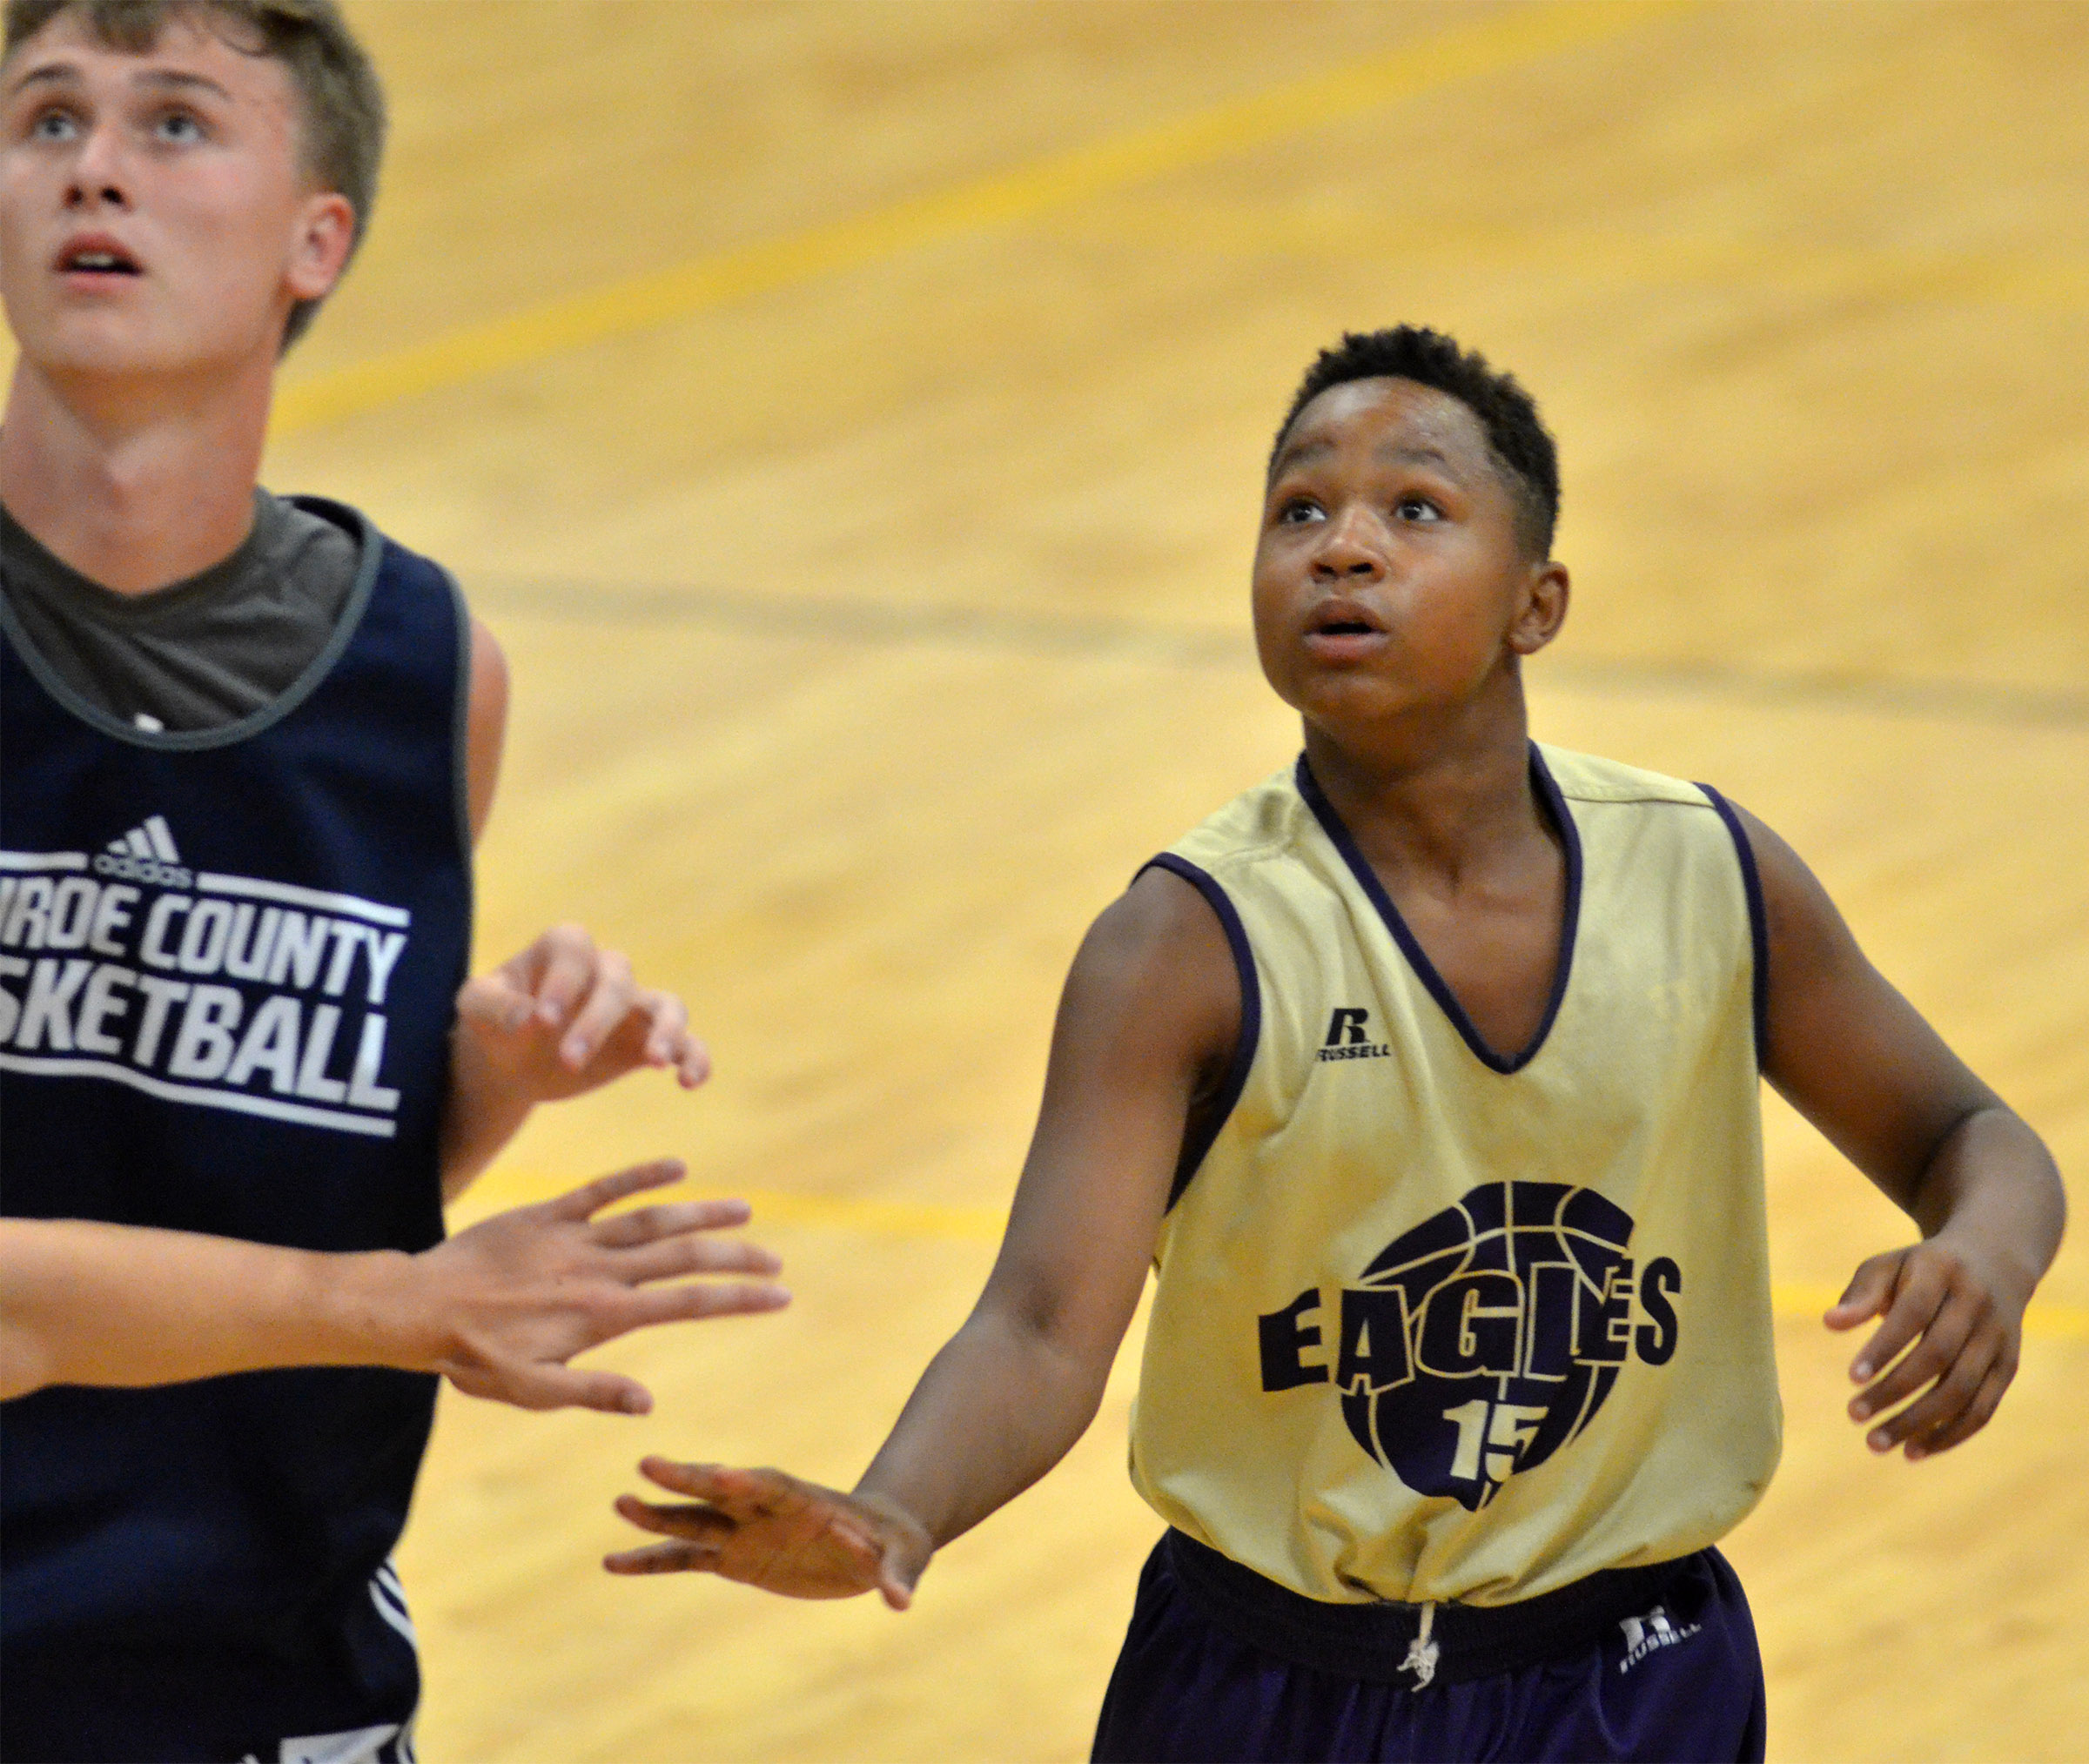 Campbellsville Middle School sixth-grader Deondre Weathers looks for a rebound.